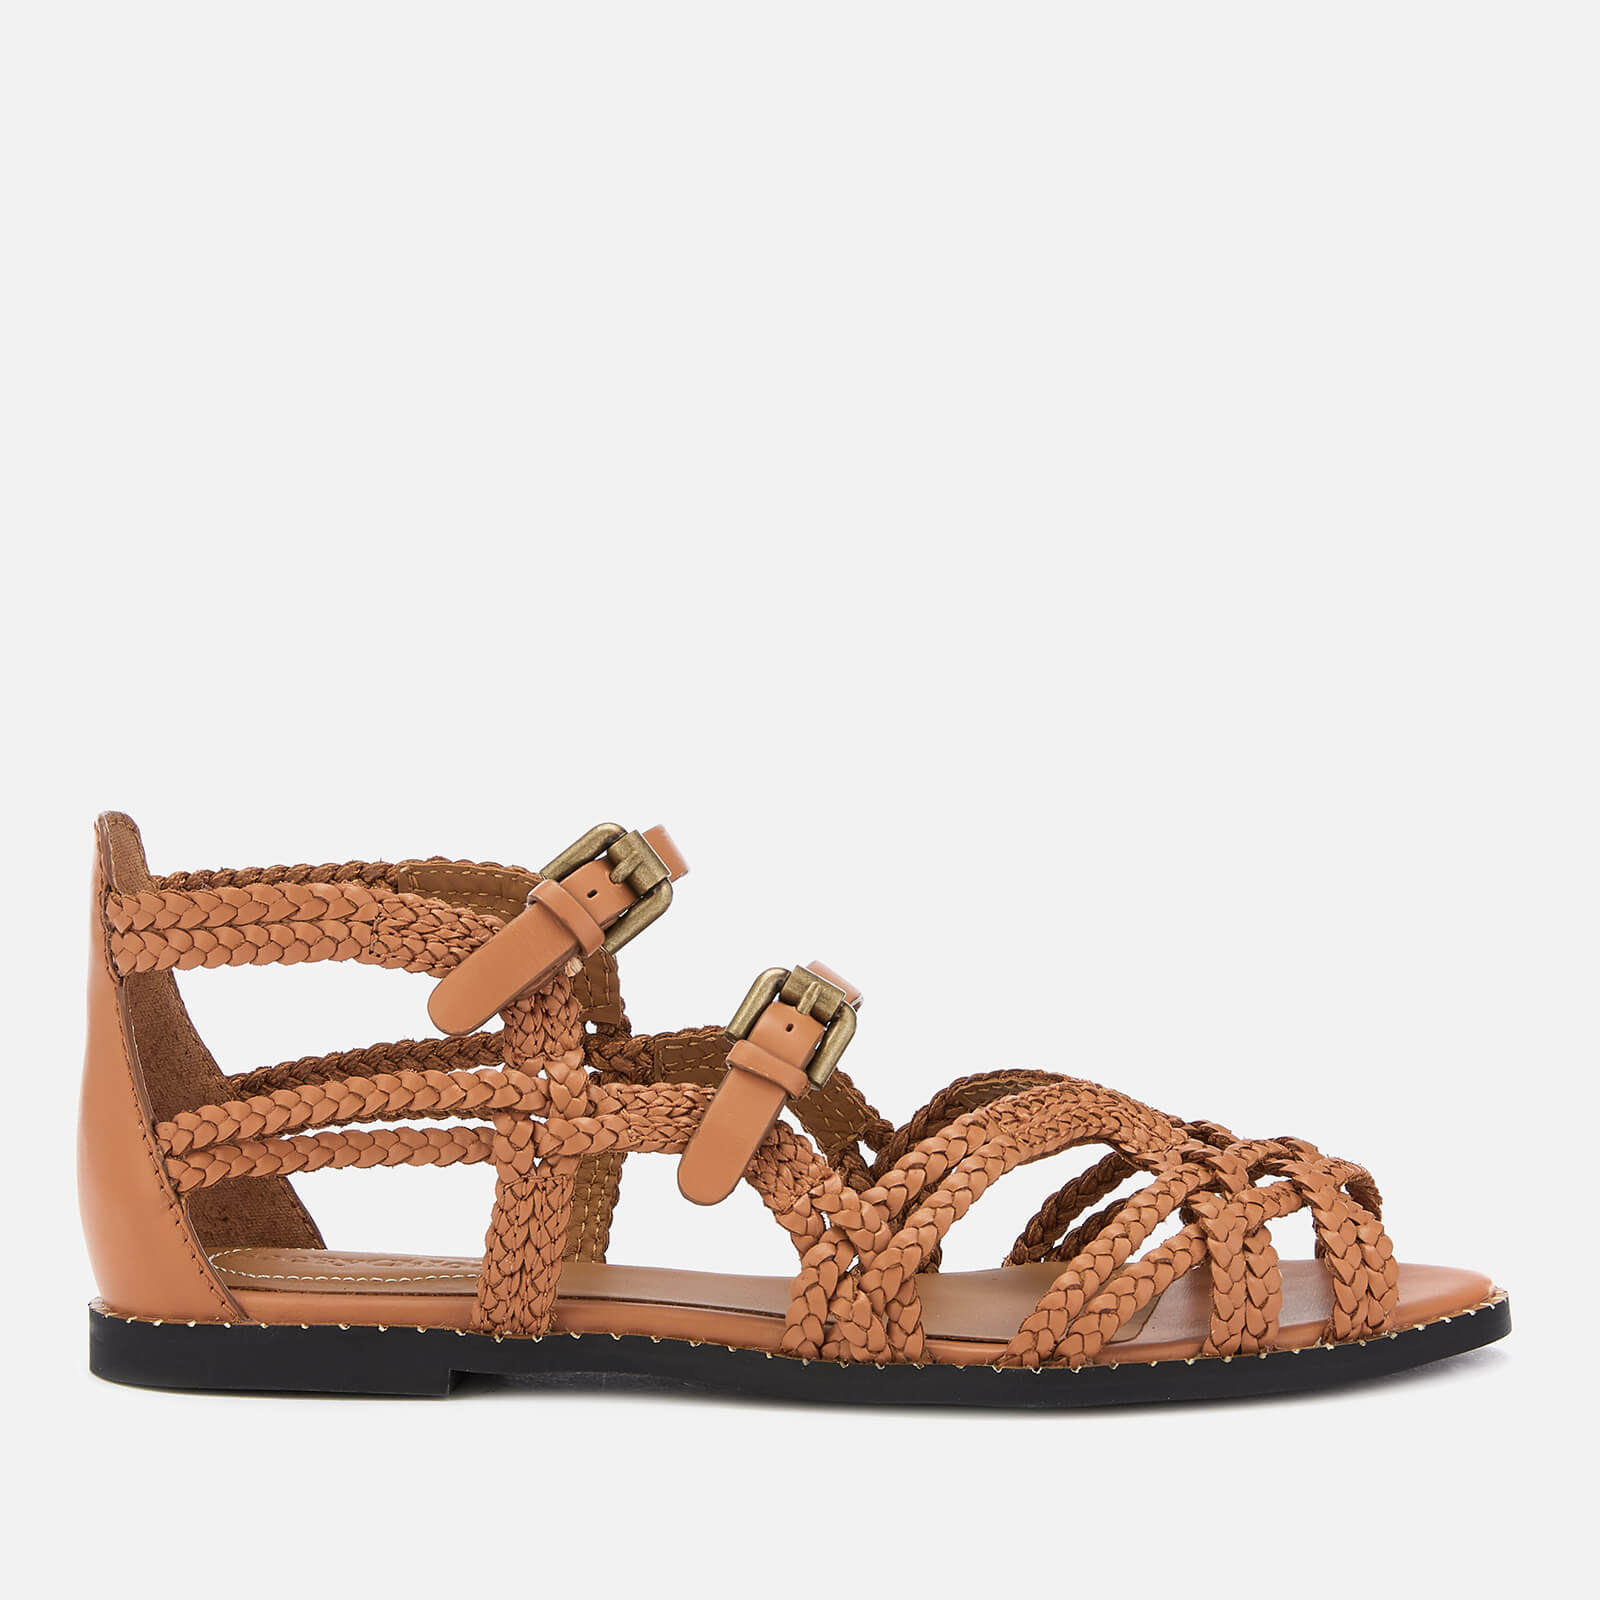 276c5164d9f See By Chloé Women s Katie Braided Leather Flat Sandals - Sierra ...